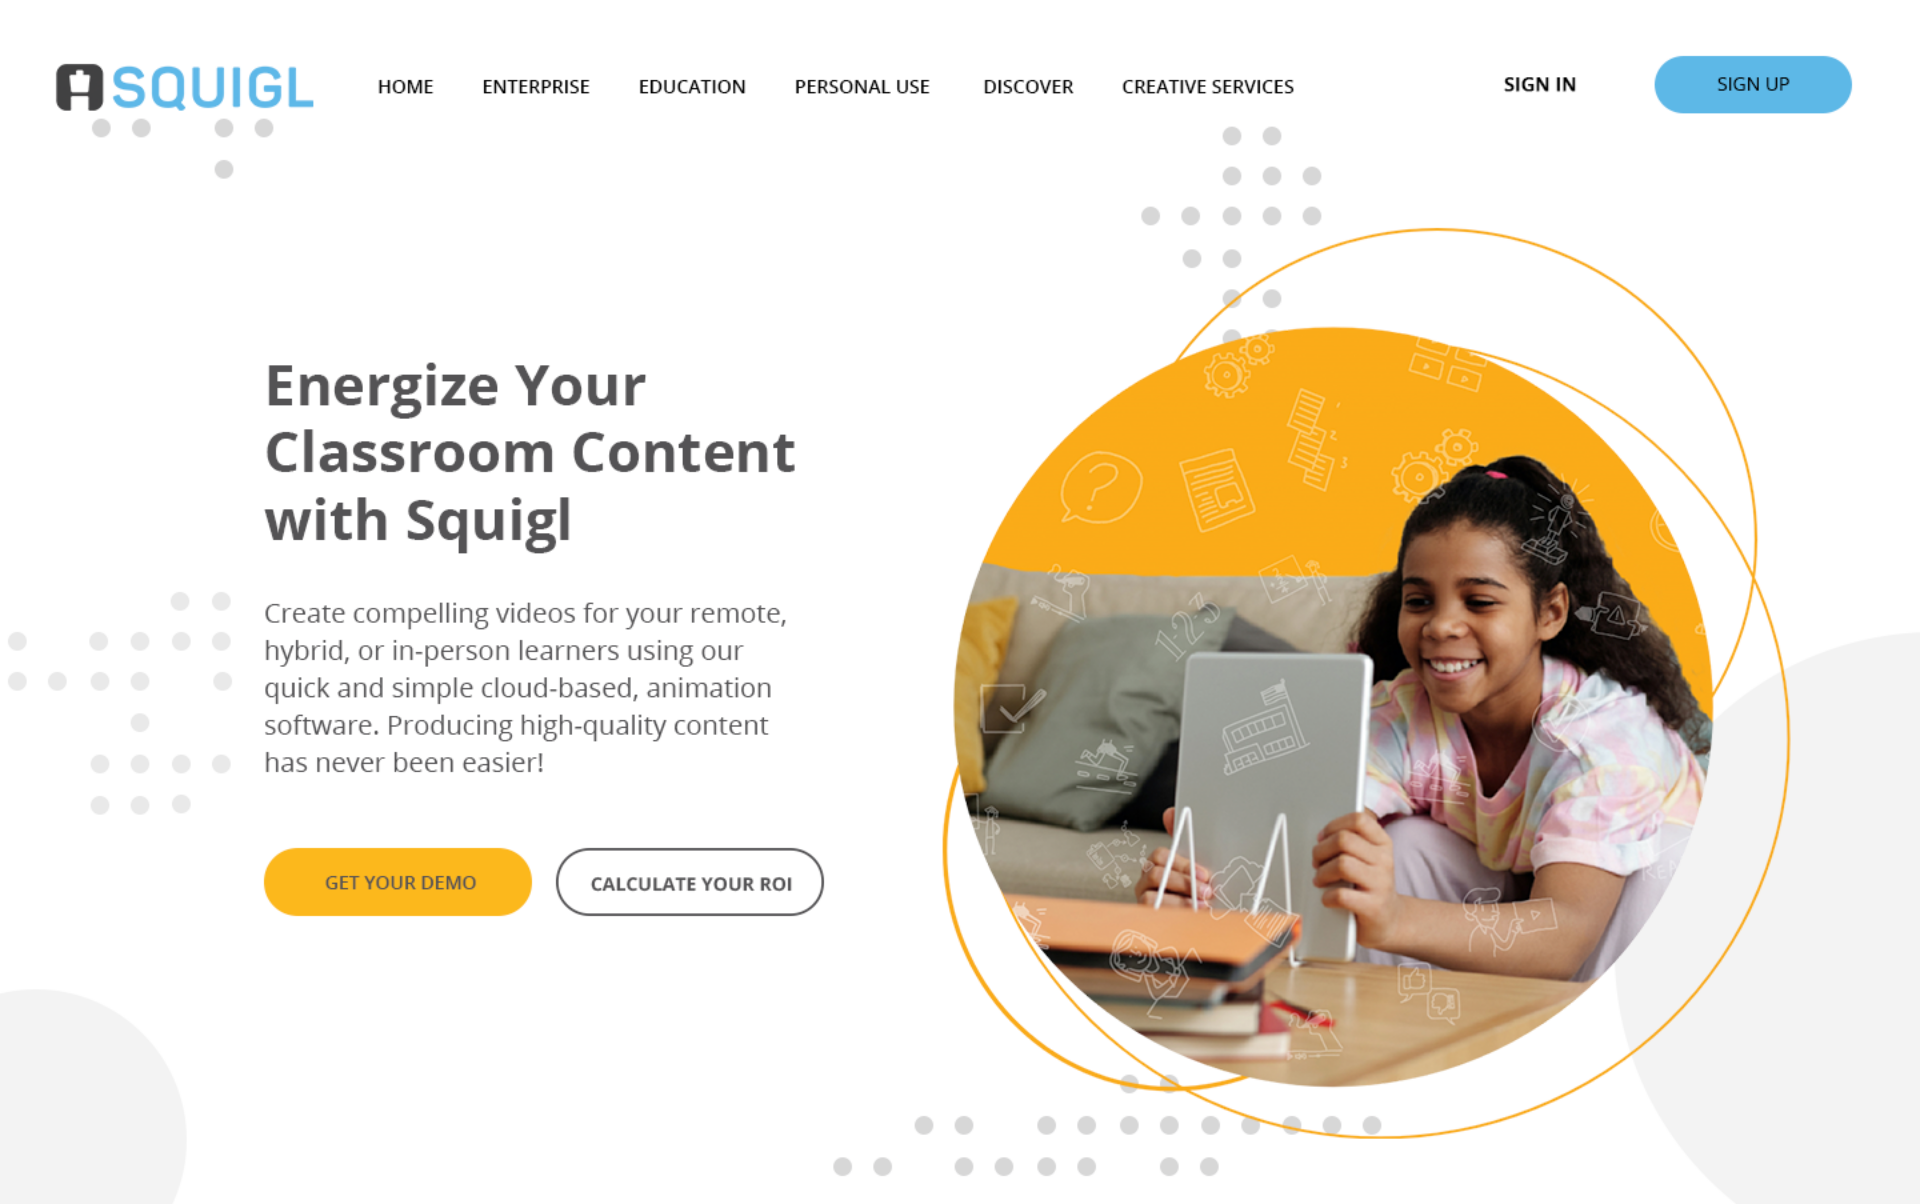 squigl-industry-pages-header_v2MD - Copy